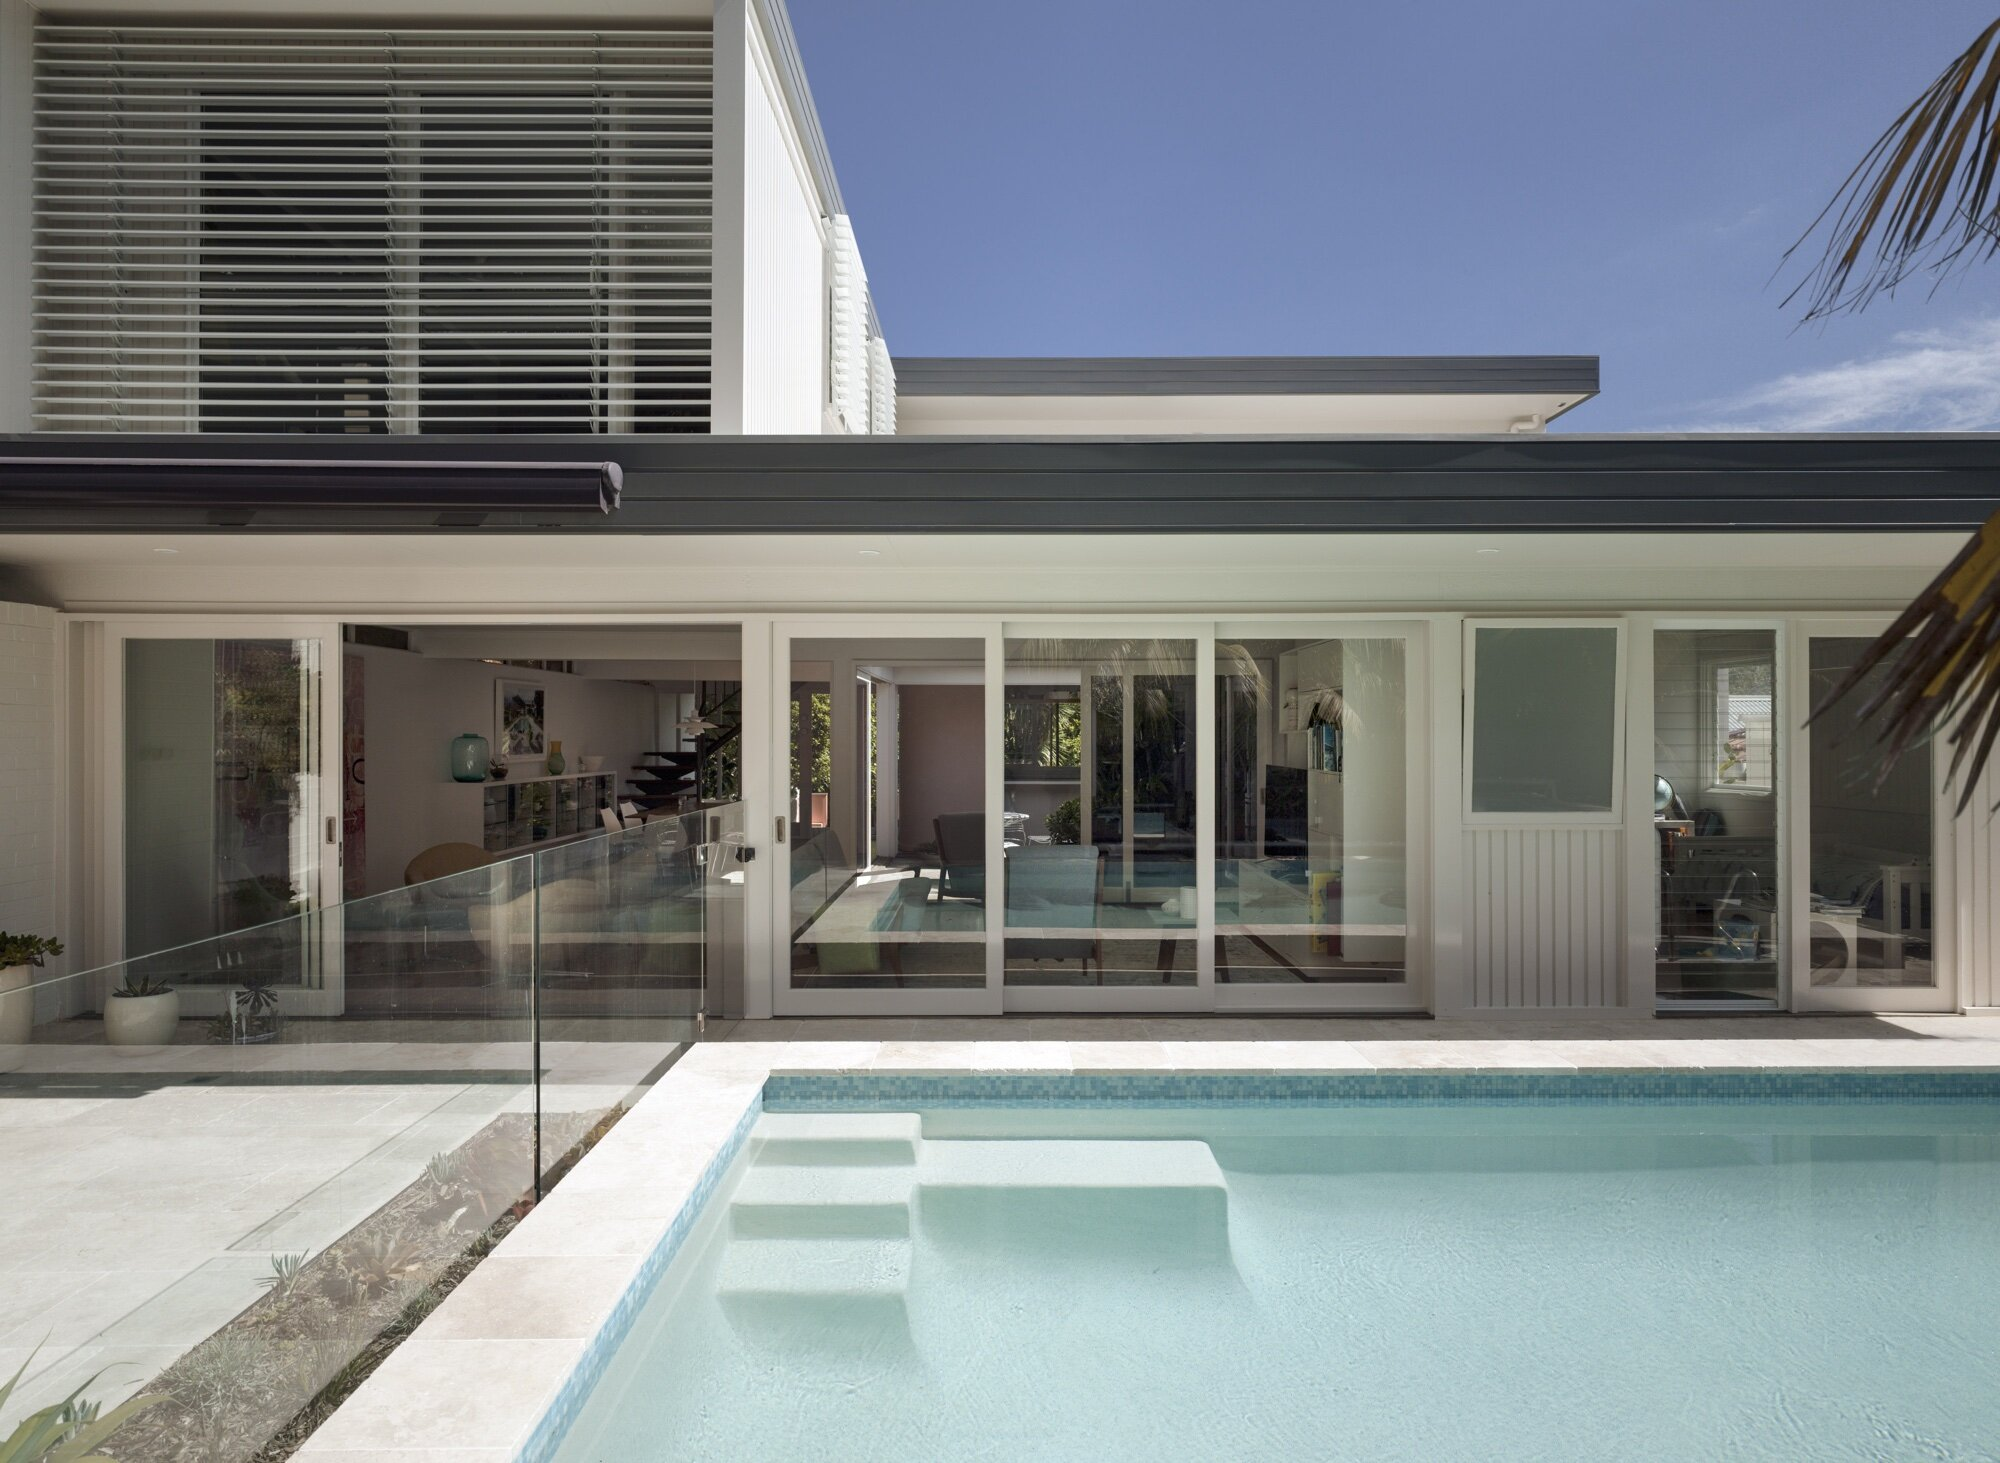 Pool Courtyard. The pool was reconfigured creating more sun drenched terrace space for entertaining and landscaping